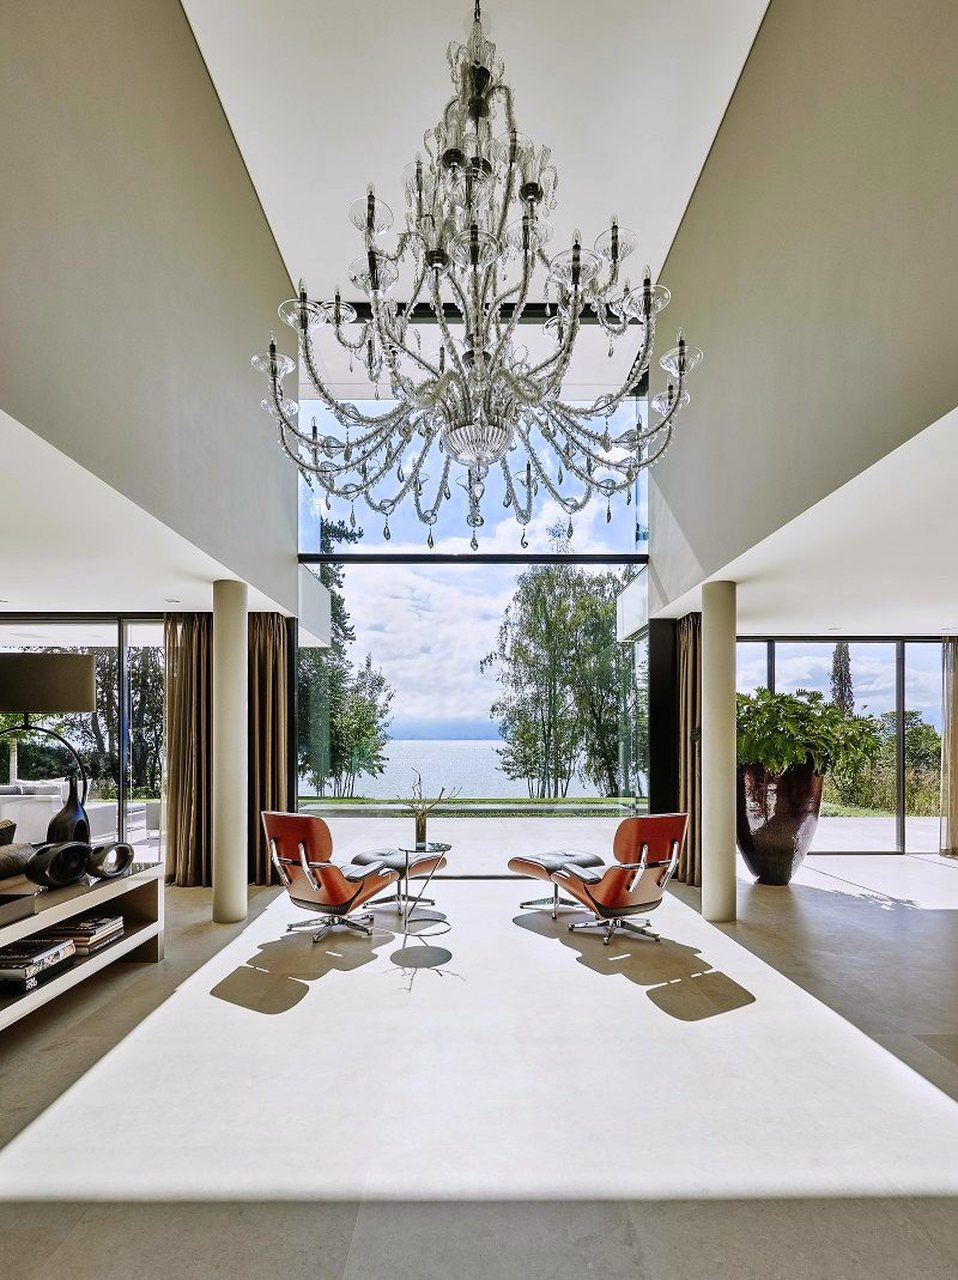 boca do lobo Boca do Lobo's Most Remarkable Interior Design Projects Eric Kuster Lakeside Villa entryway architecture design projects boca do lobo 2